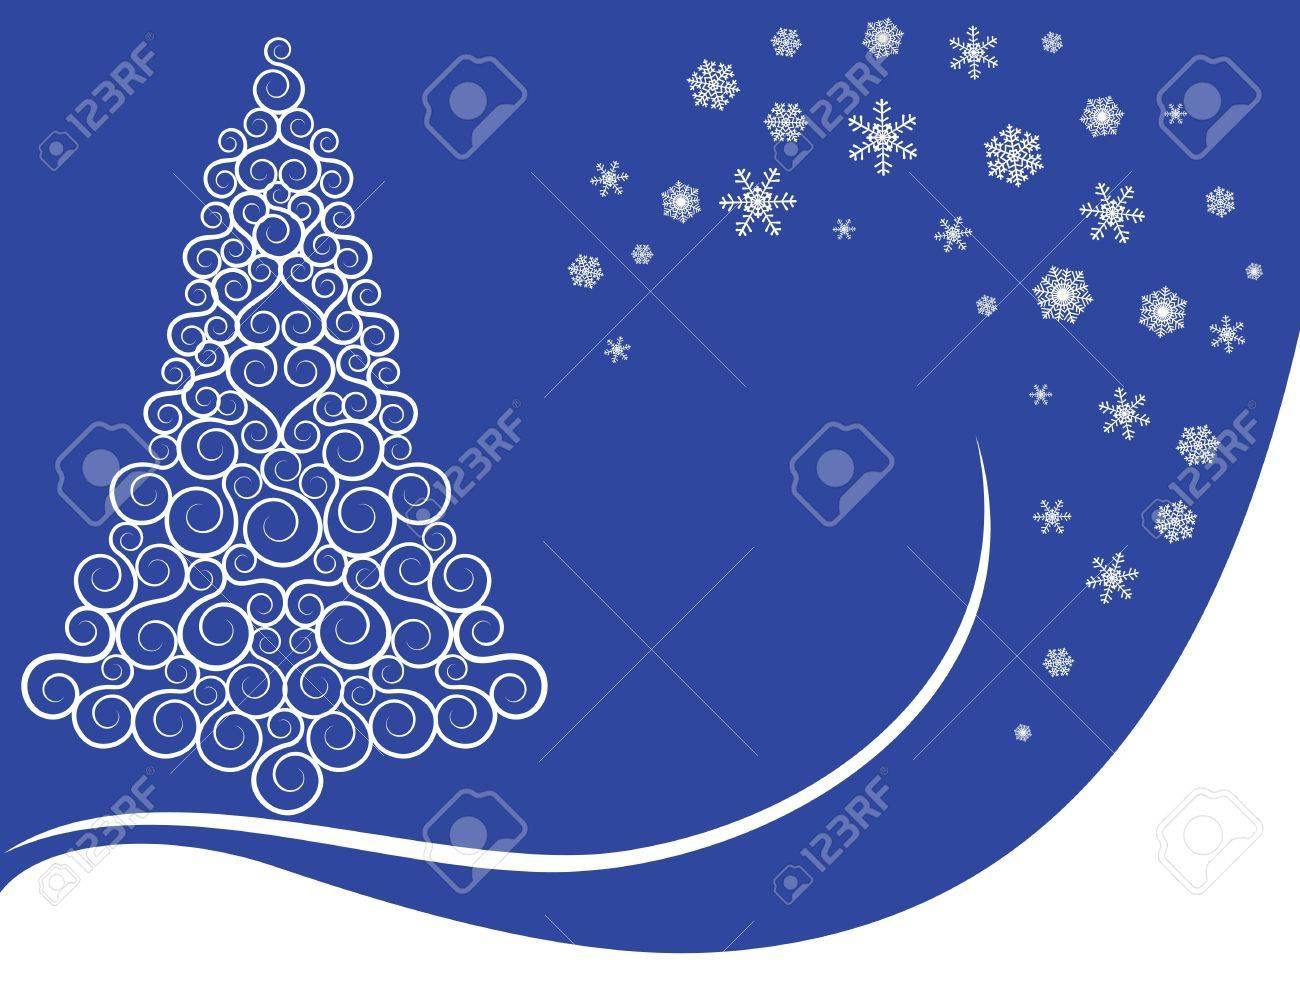 Christmas card with curly tree and snowflakes on blue background Stock Vector - 16478058